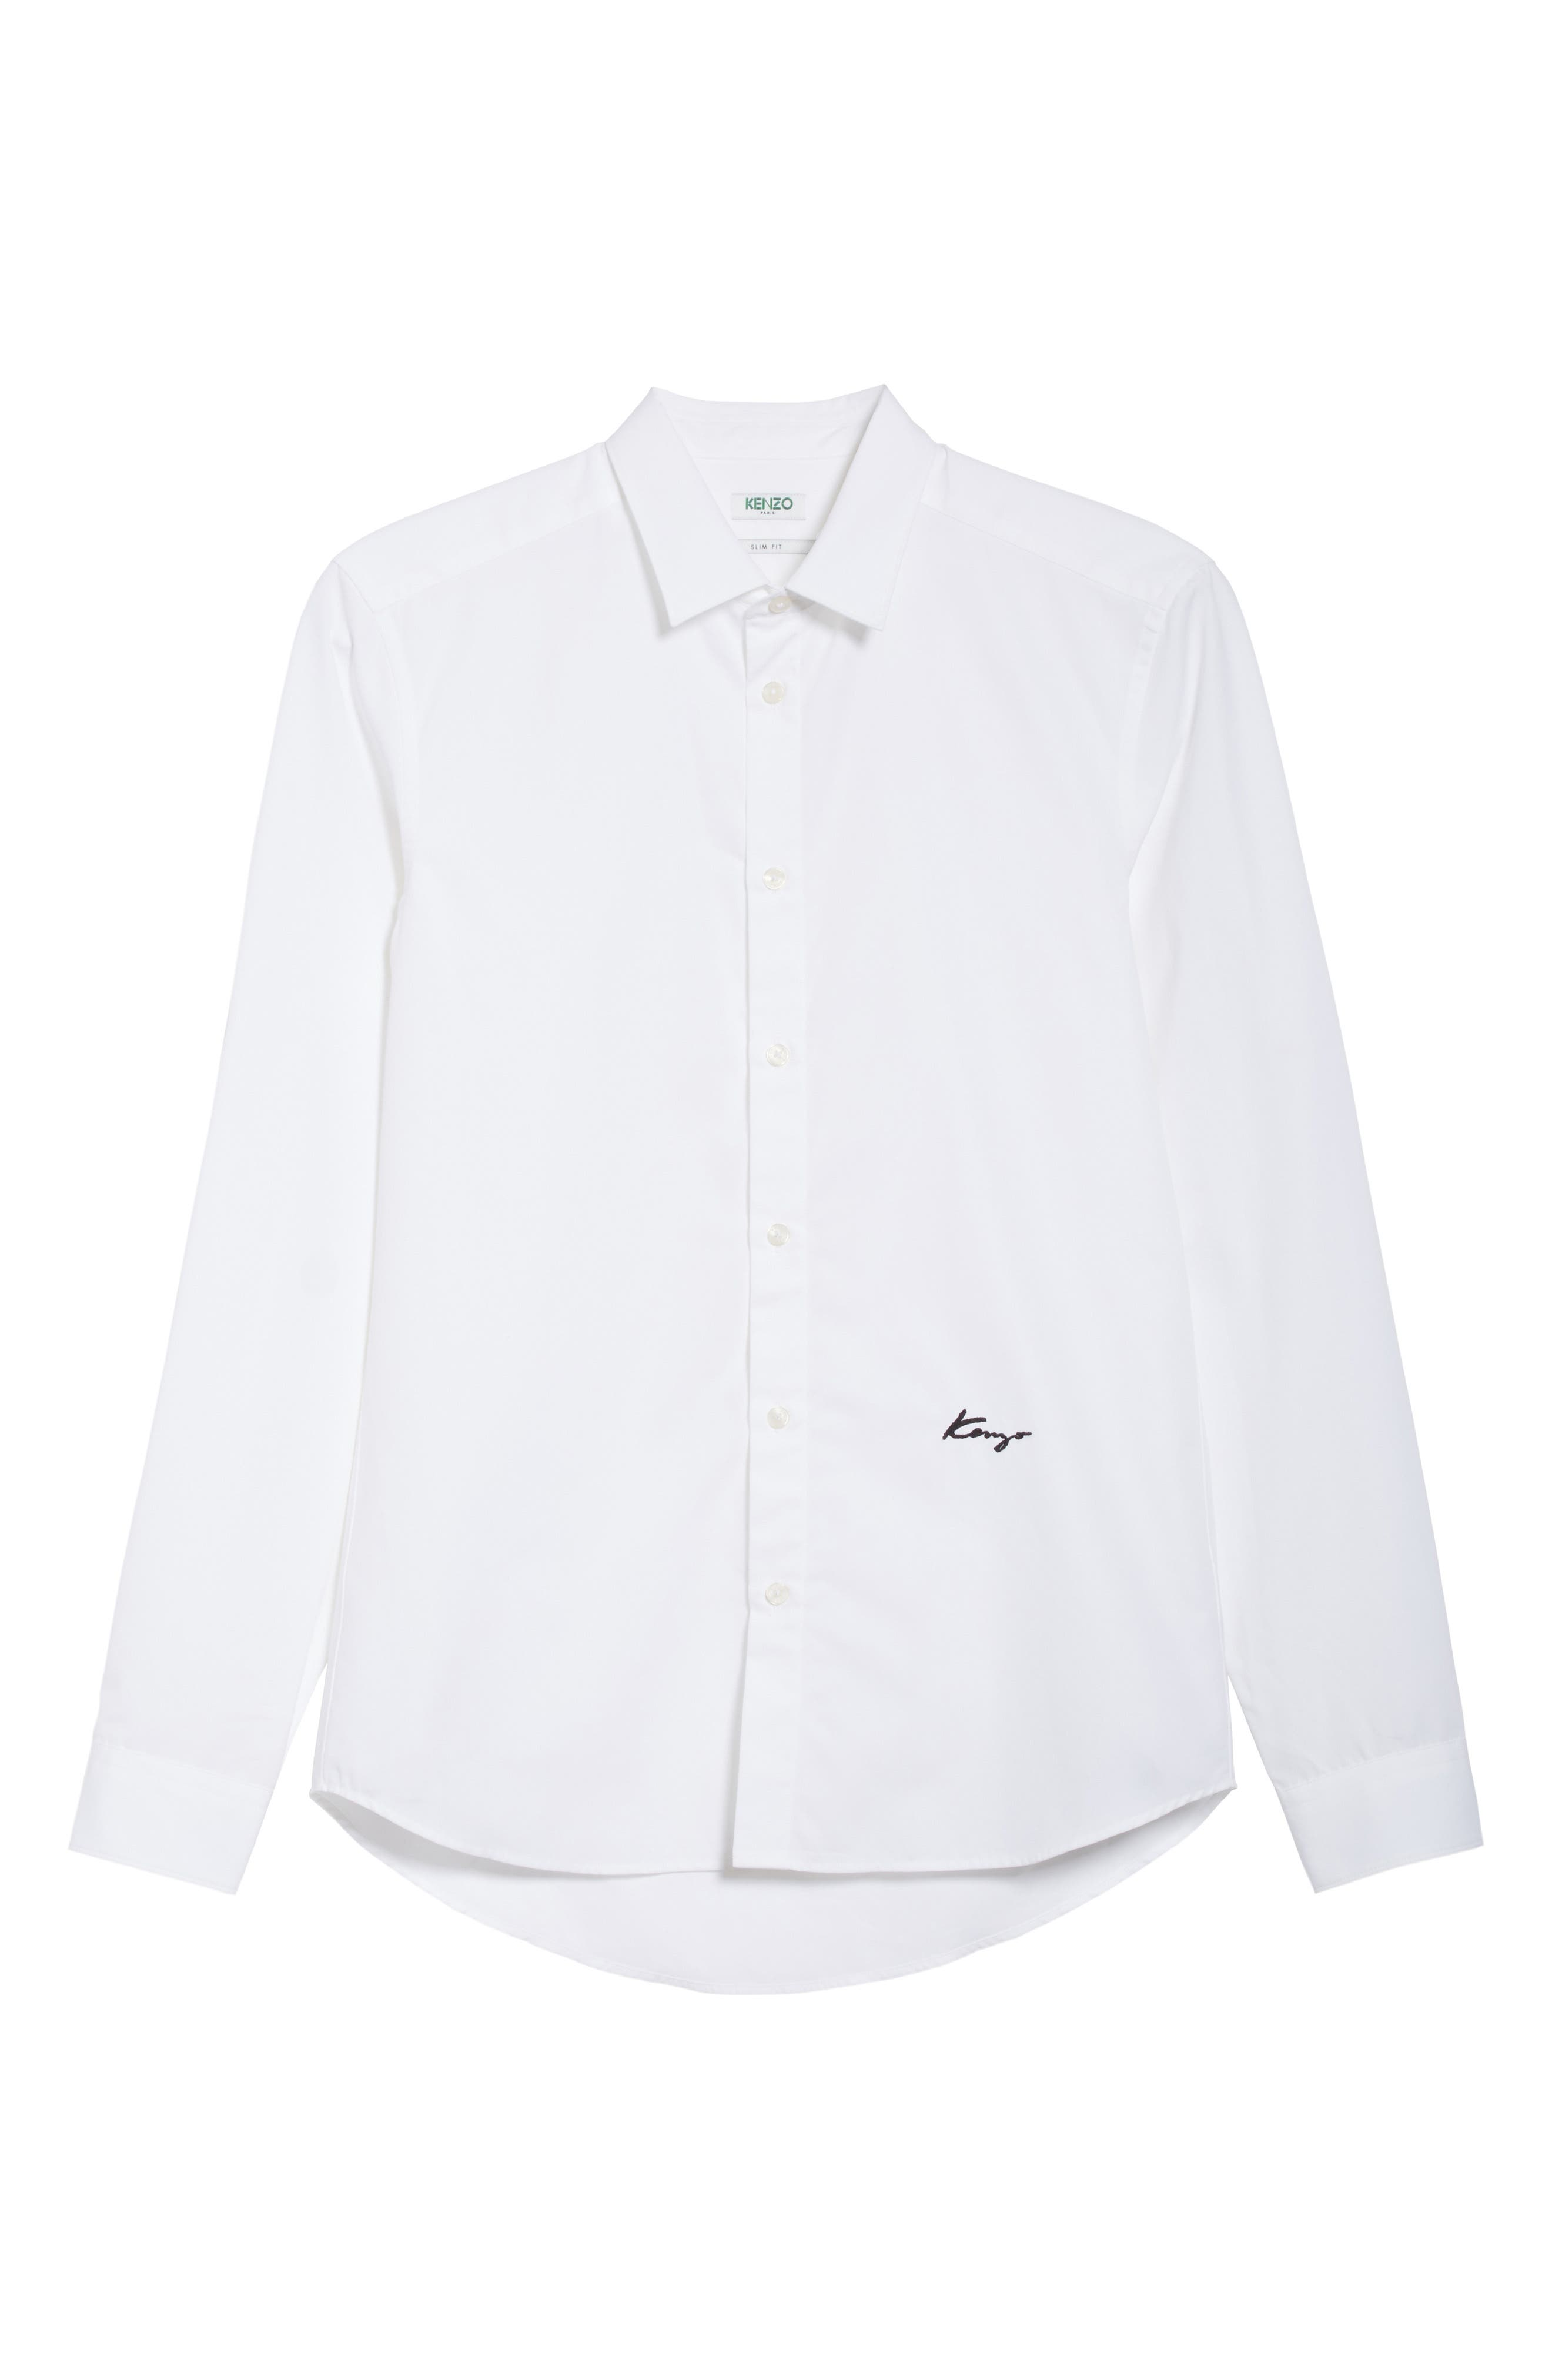 KENZO,                             Slim Fit Embroidered Shirt,                             Alternate thumbnail 6, color,                             100